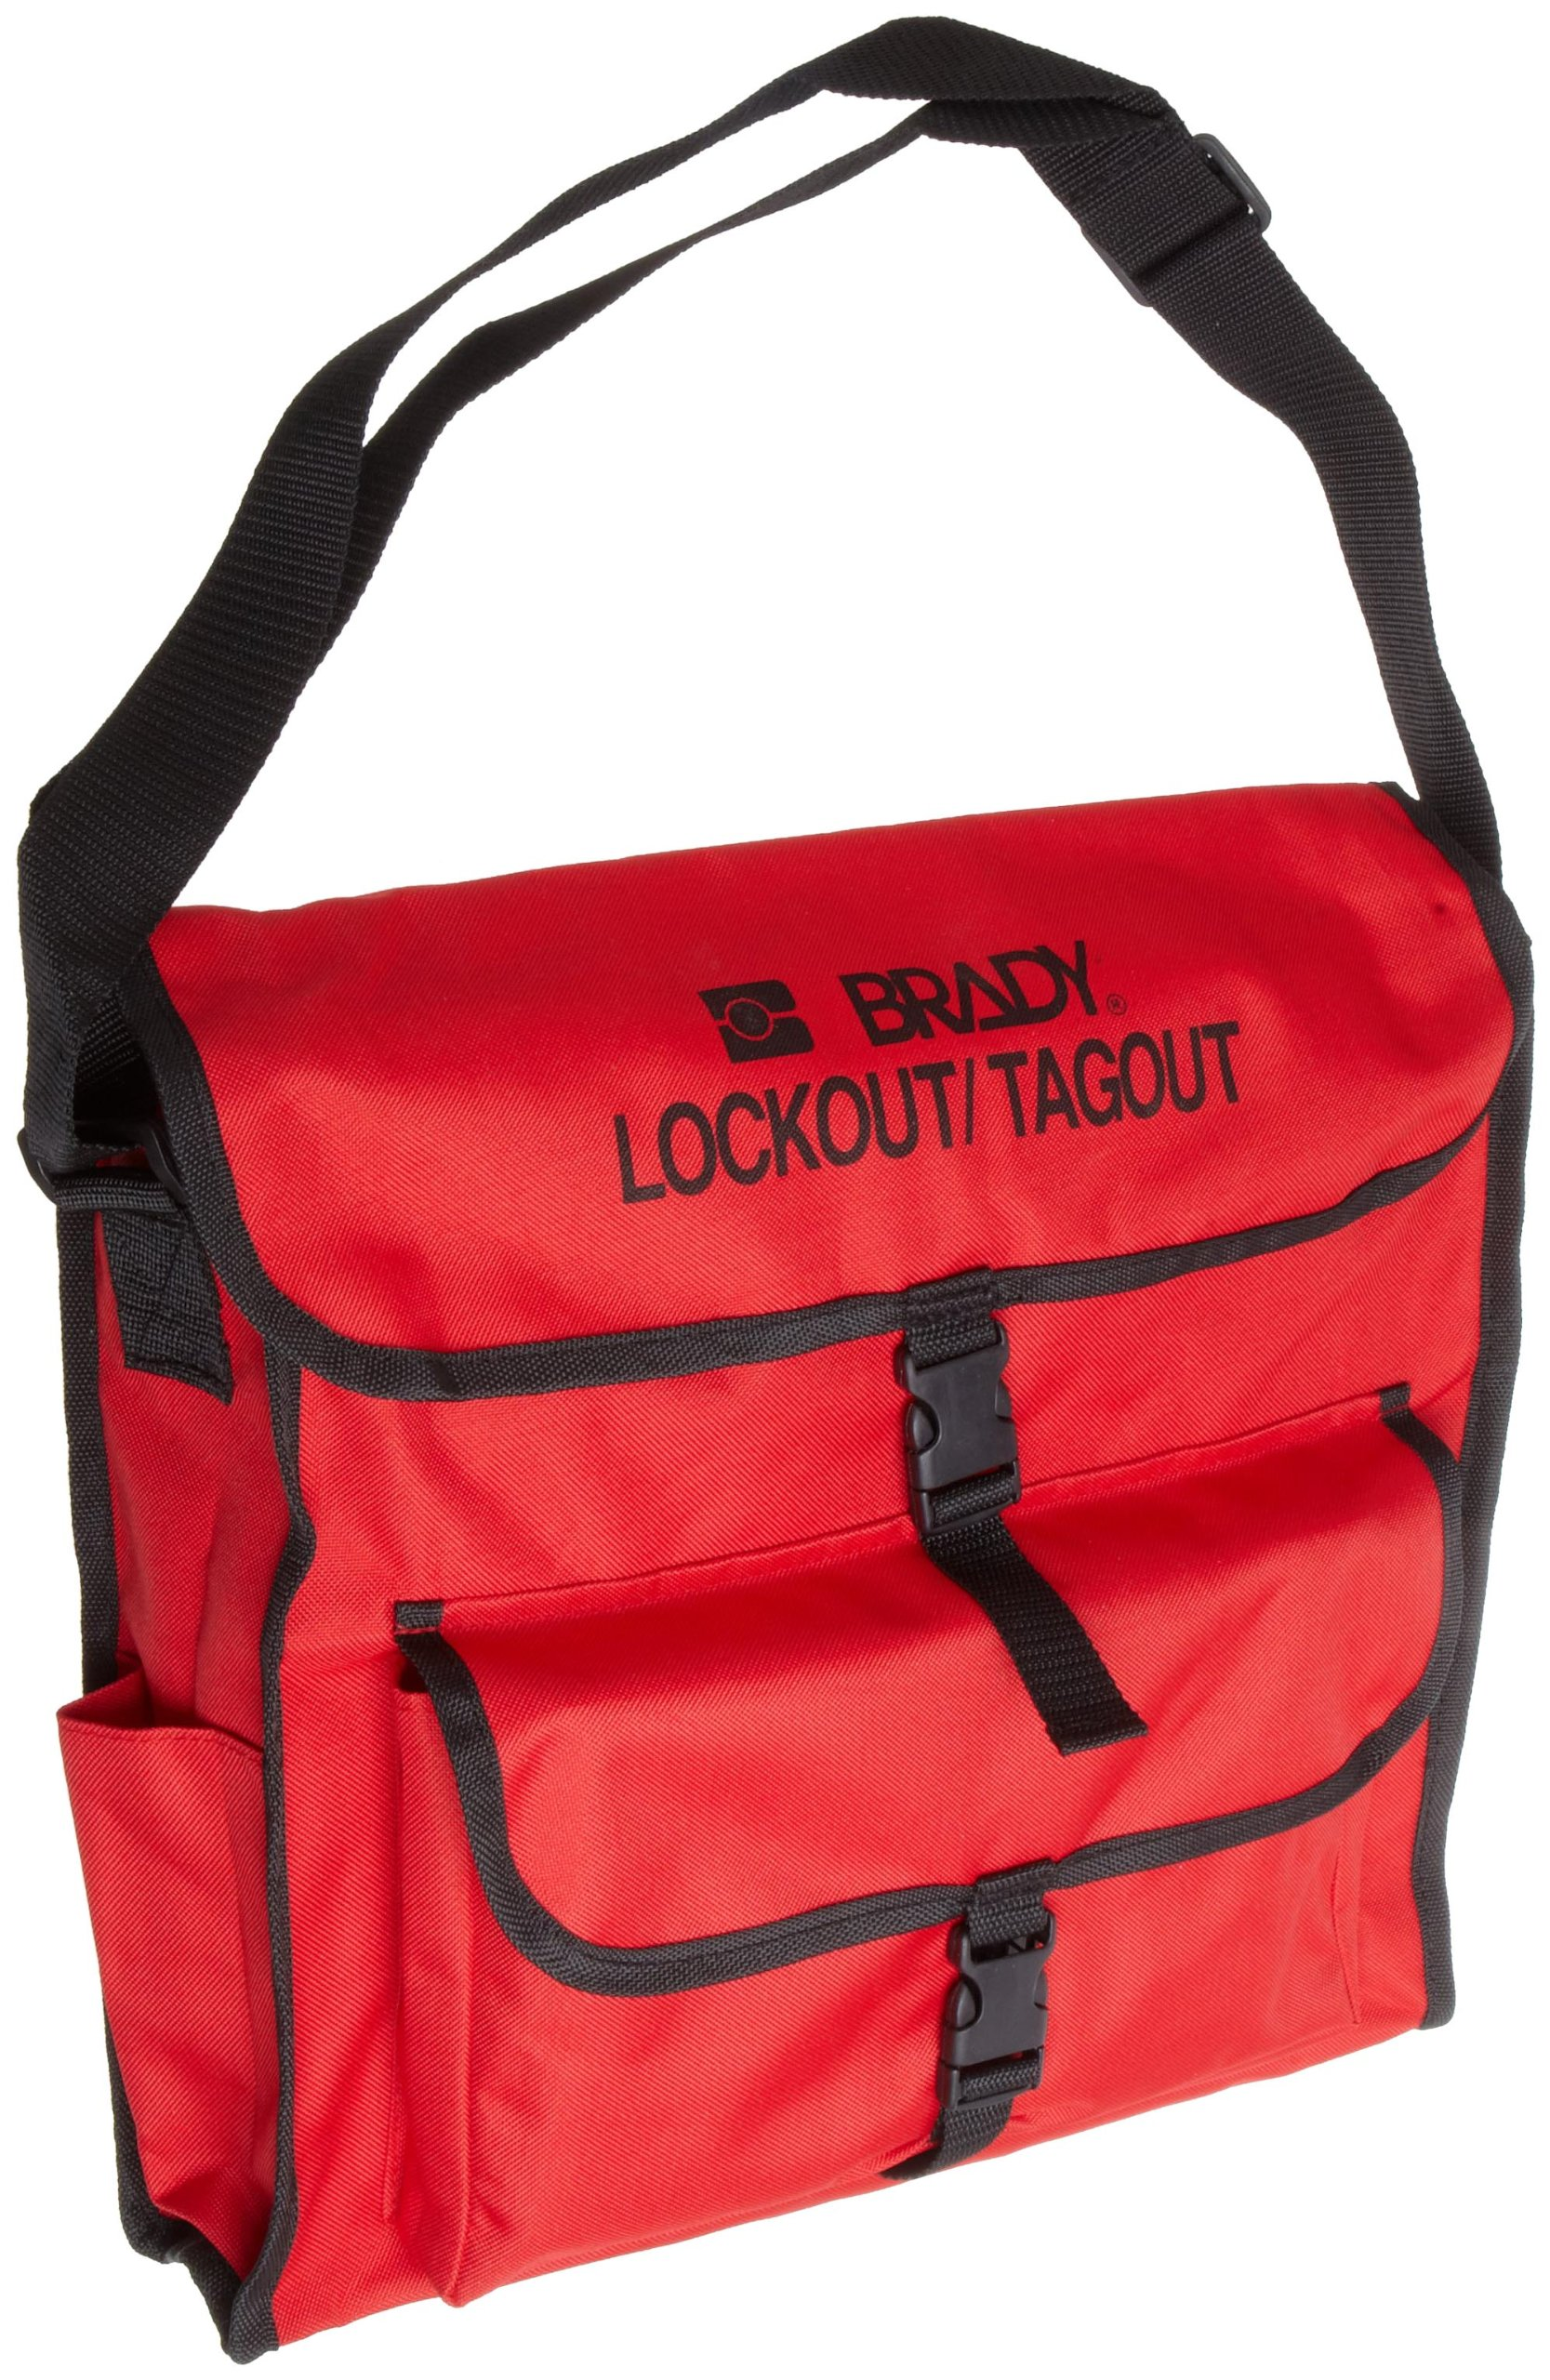 Brady Lockout Satchel, Legend ''Brady Lockout/Tagout'' by Brady